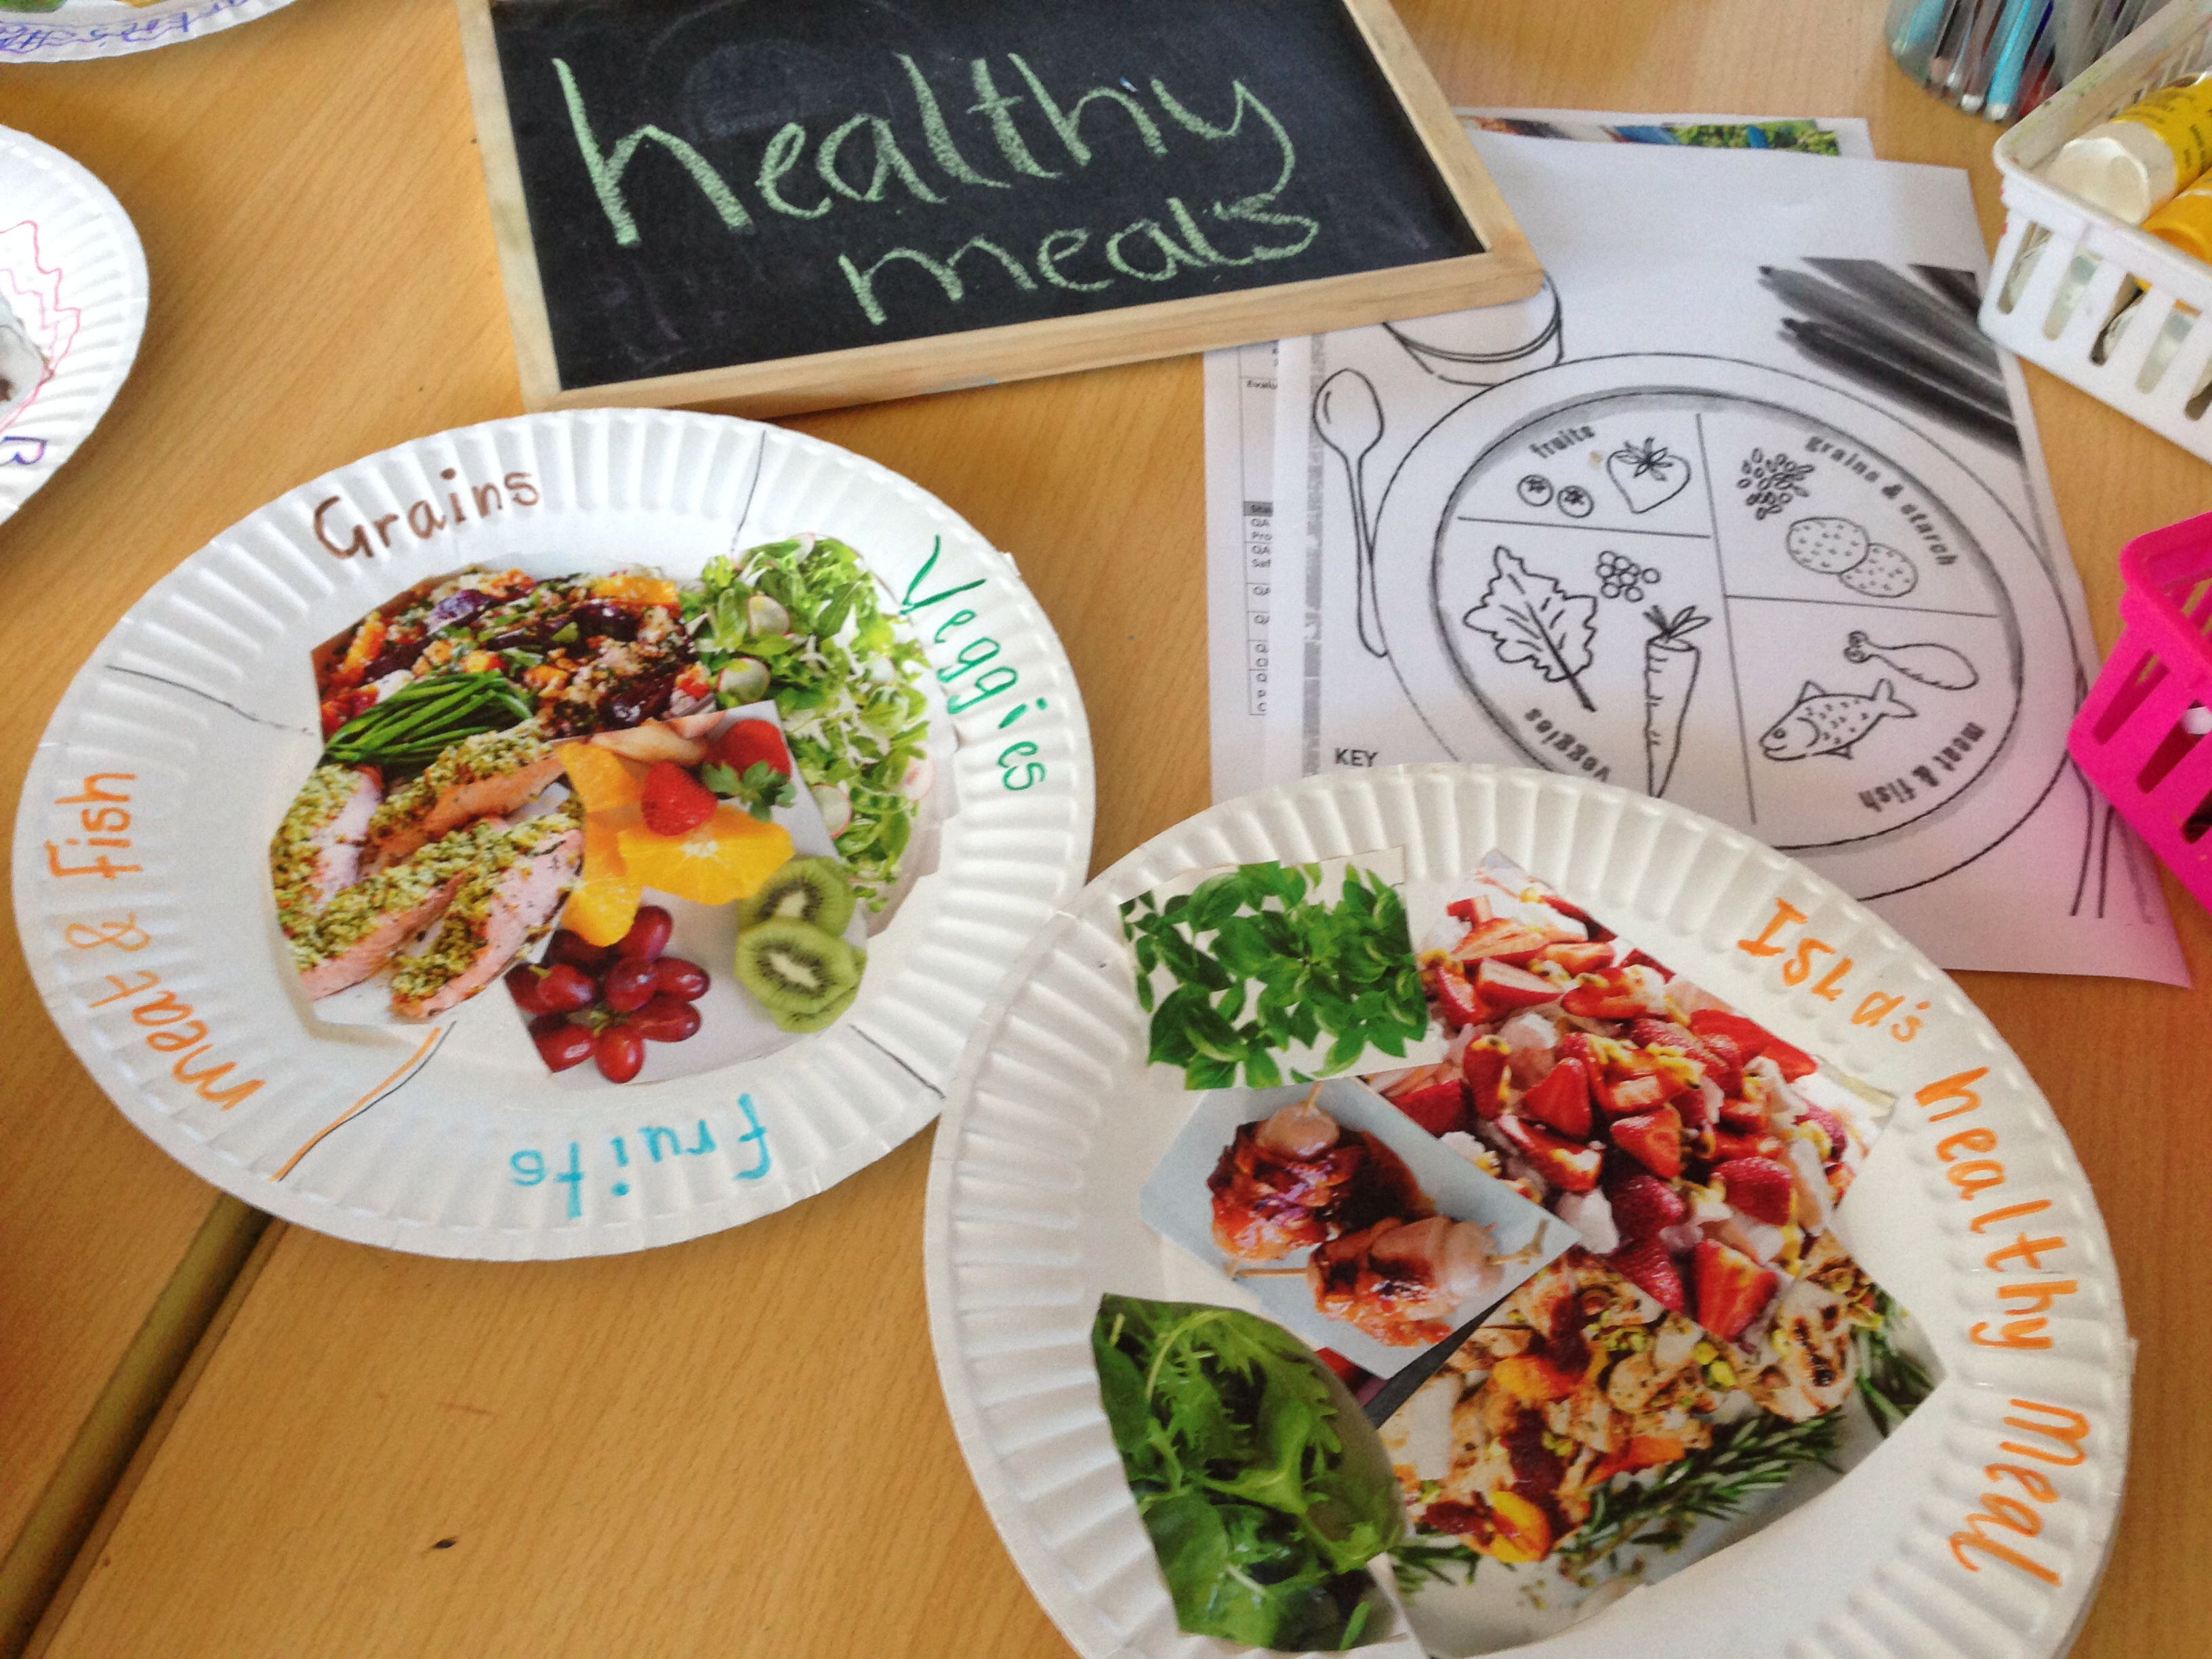 Healthy meals craft activity in afterschool care linking ... - photo#42